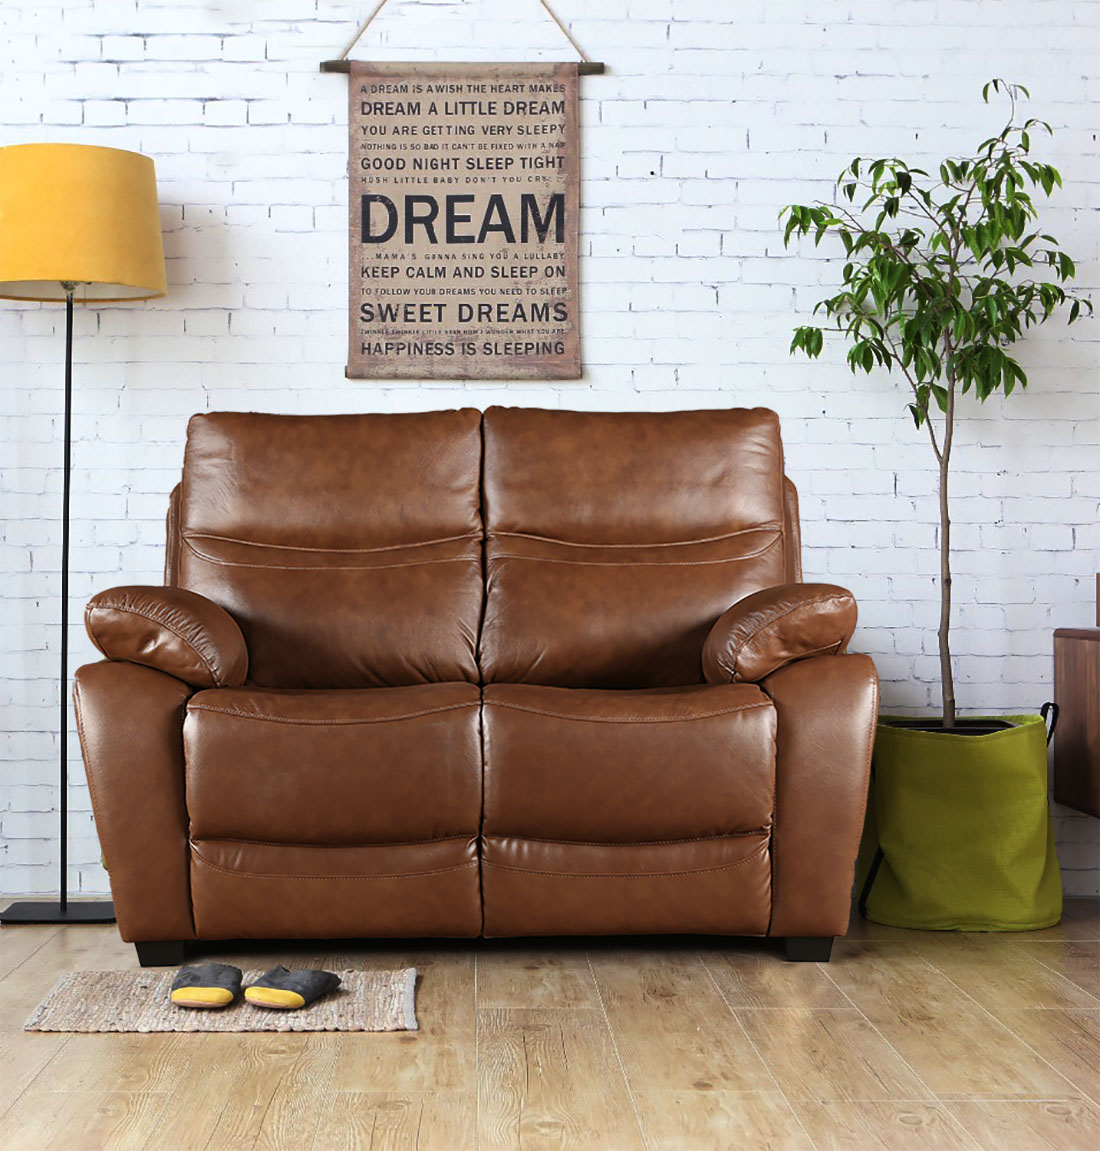 Lopez Half Leather Two Seater Sofa in Brown Colour by HomeTown